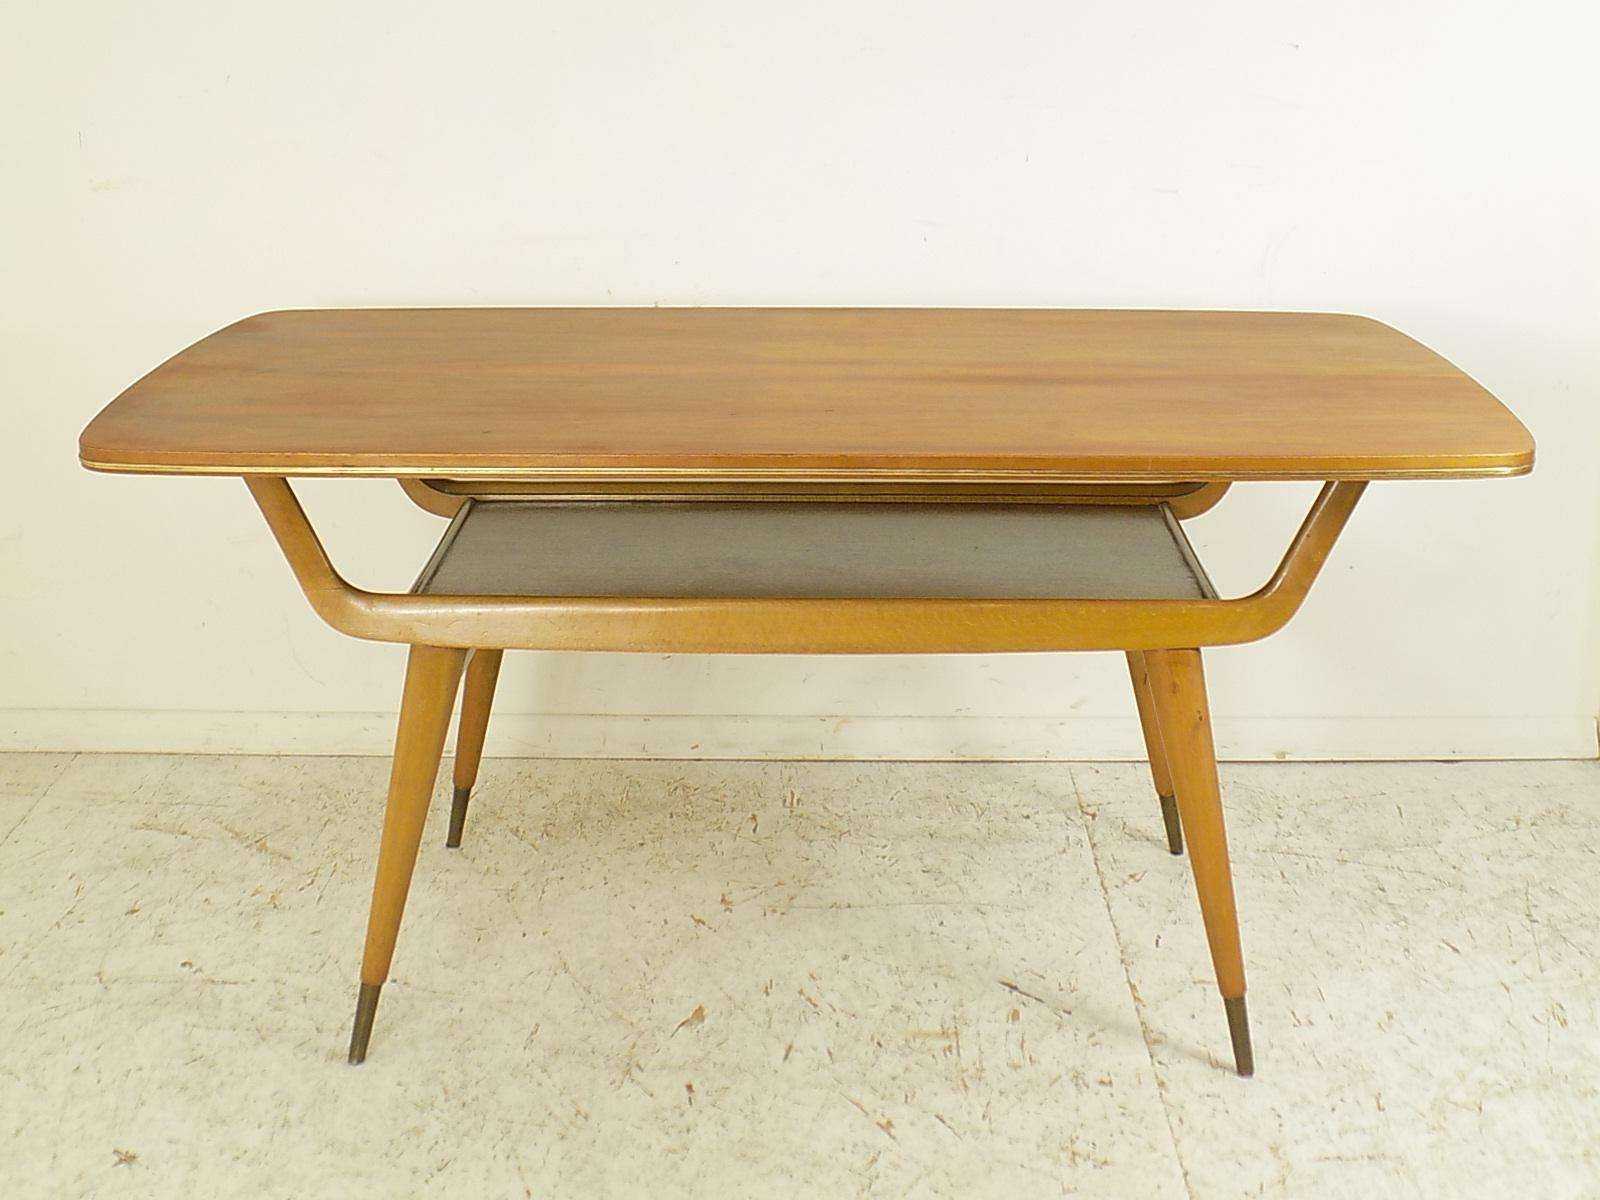 Well Known Beech Coffee Tables Throughout Vintage Walnut & Beech Coffee Table, 1960s For Sale At Pamono (View 4 of 20)